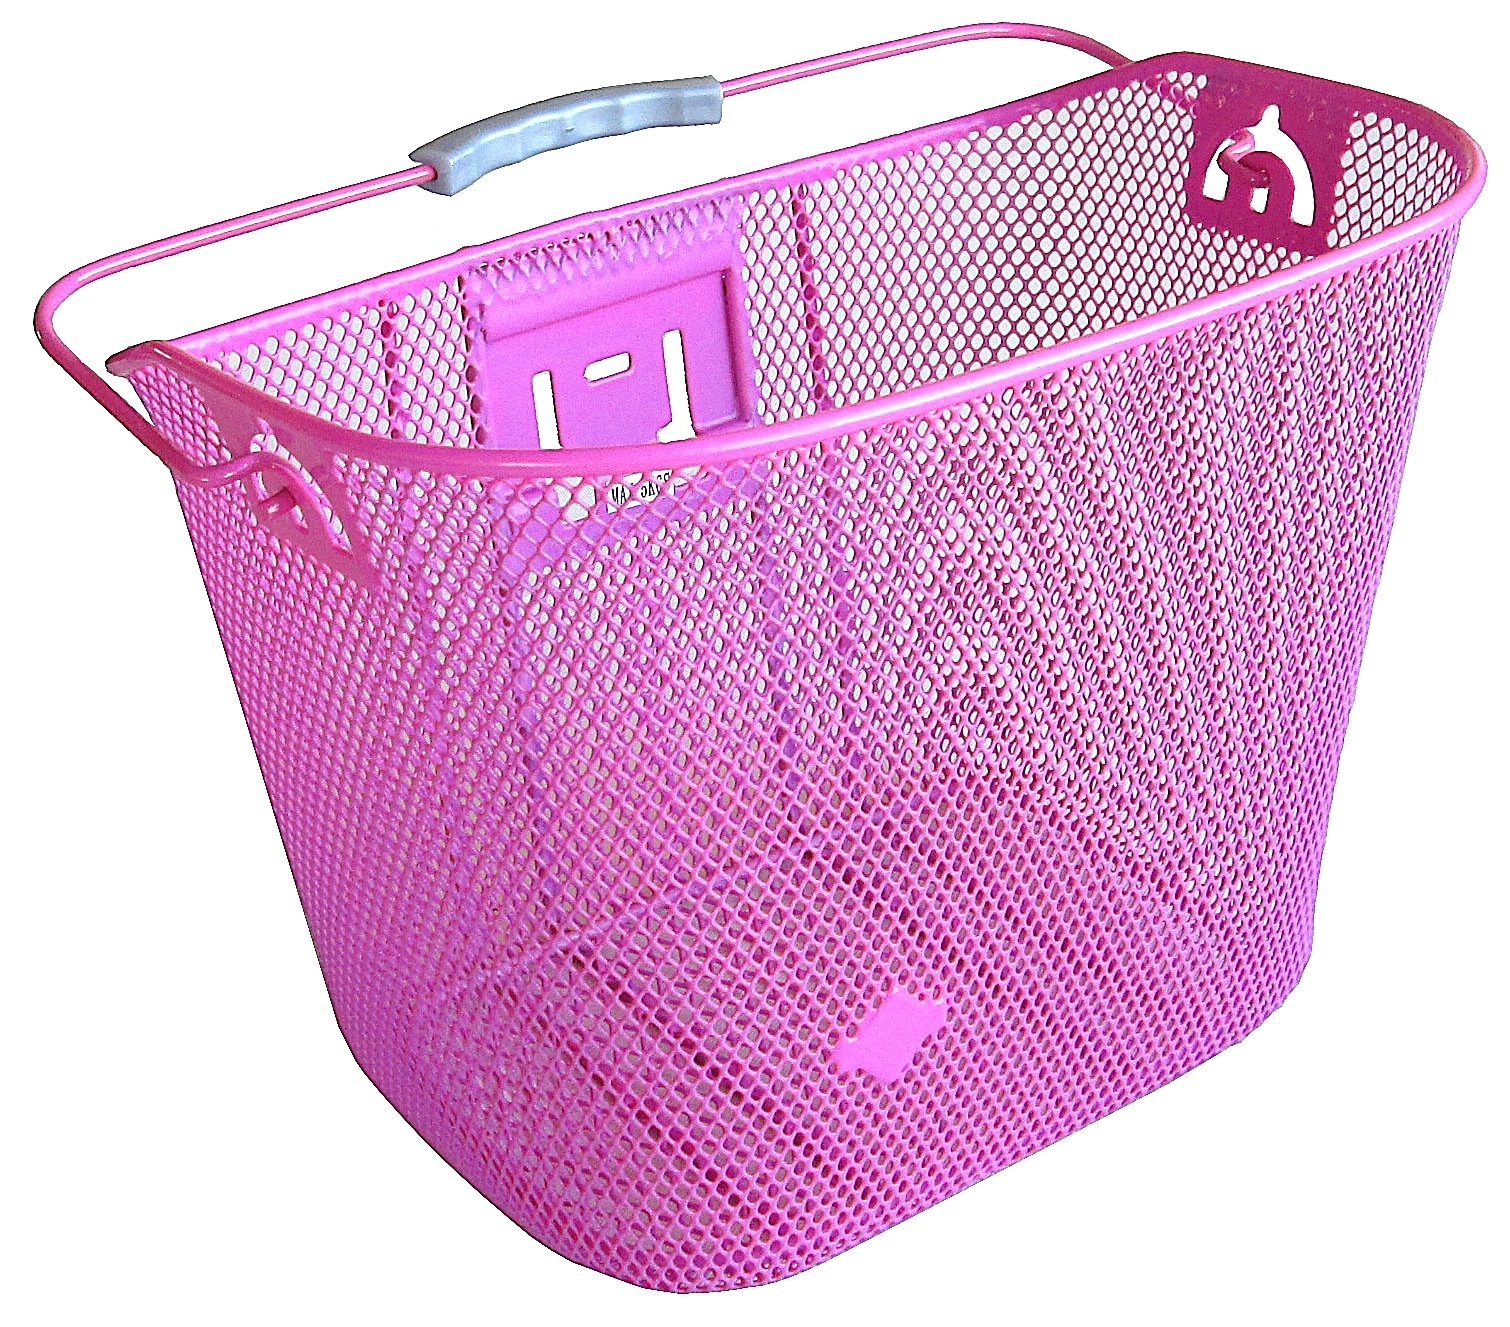 Biria CITY EXPRESS KLICK Pink Bicycle Basket